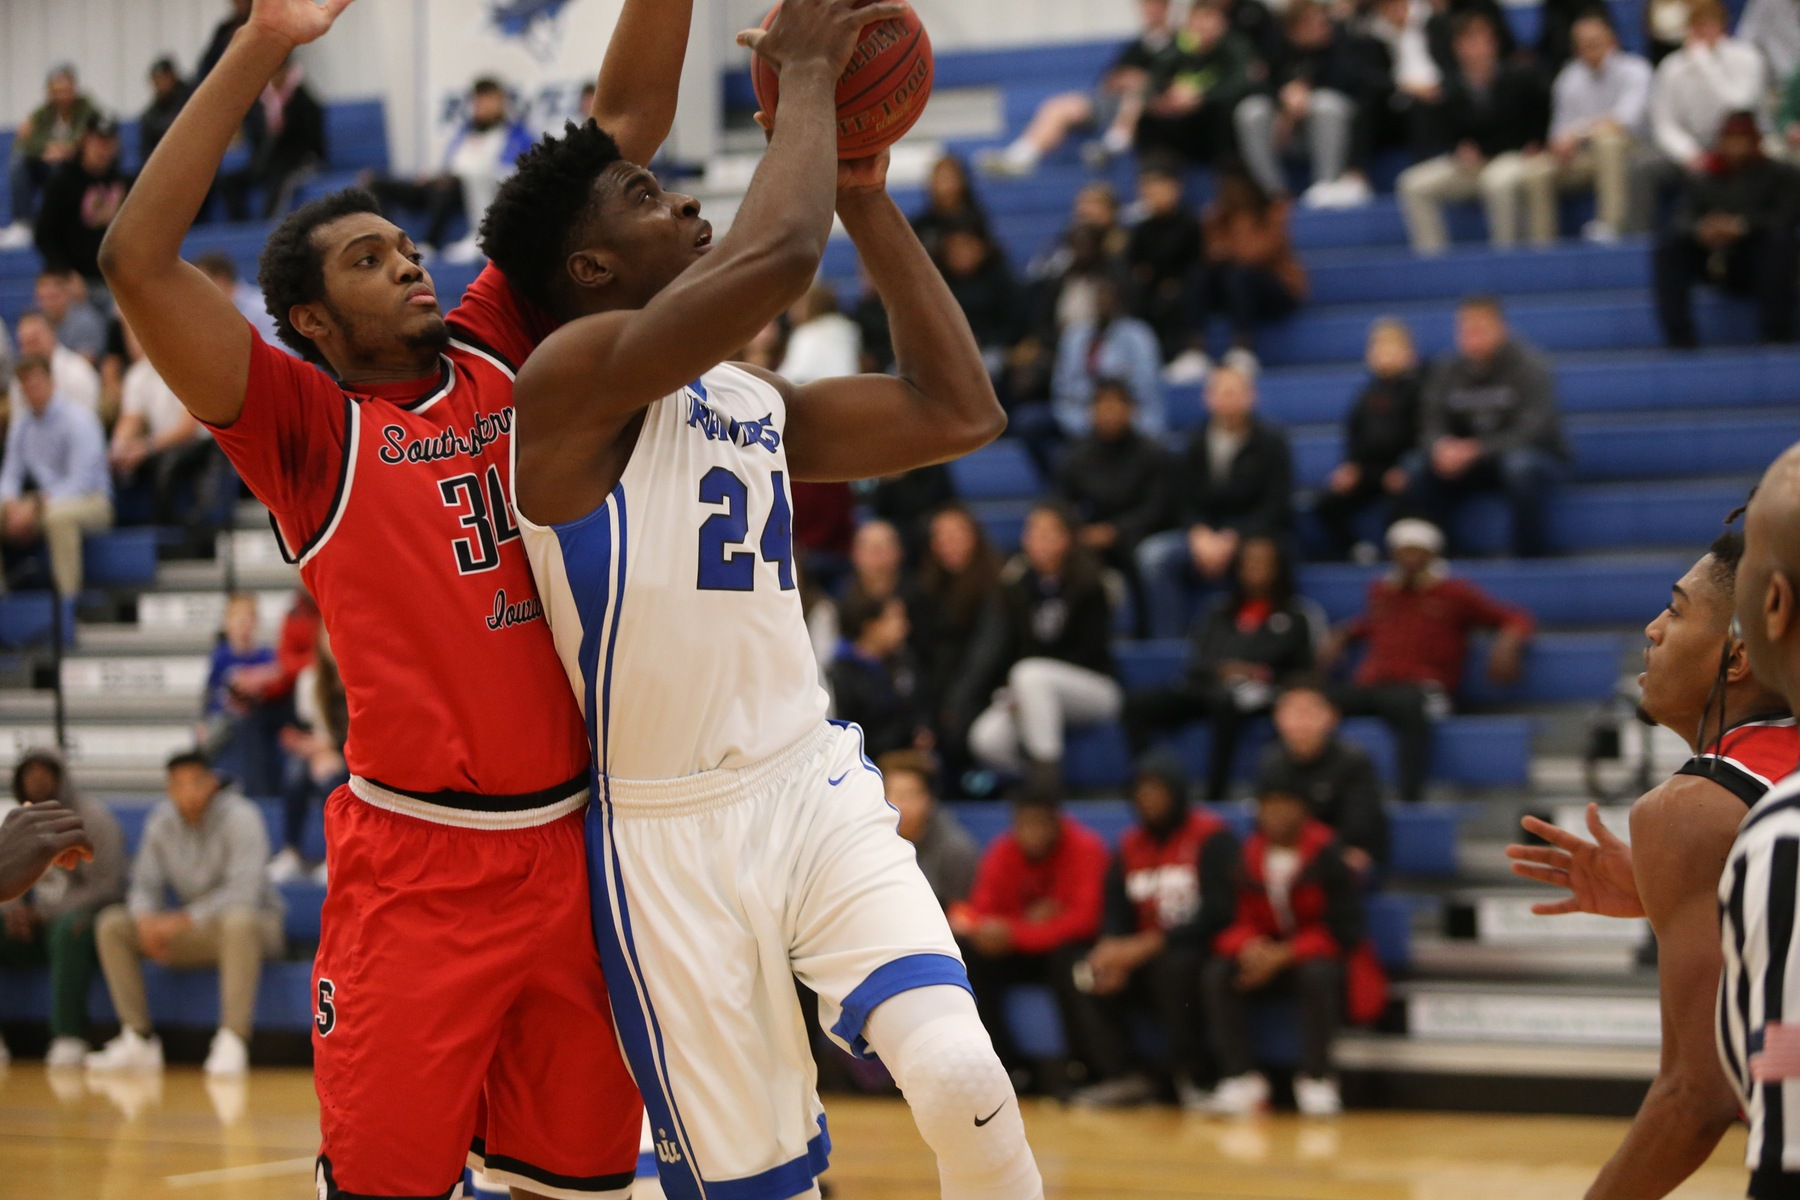 Emmanuel Ugboh helped lead ten-win Iowa Western over ten-win Northwest Kansas Tech to an 84-73 victory in the championship game of the Iowa Western Basketball Classic.